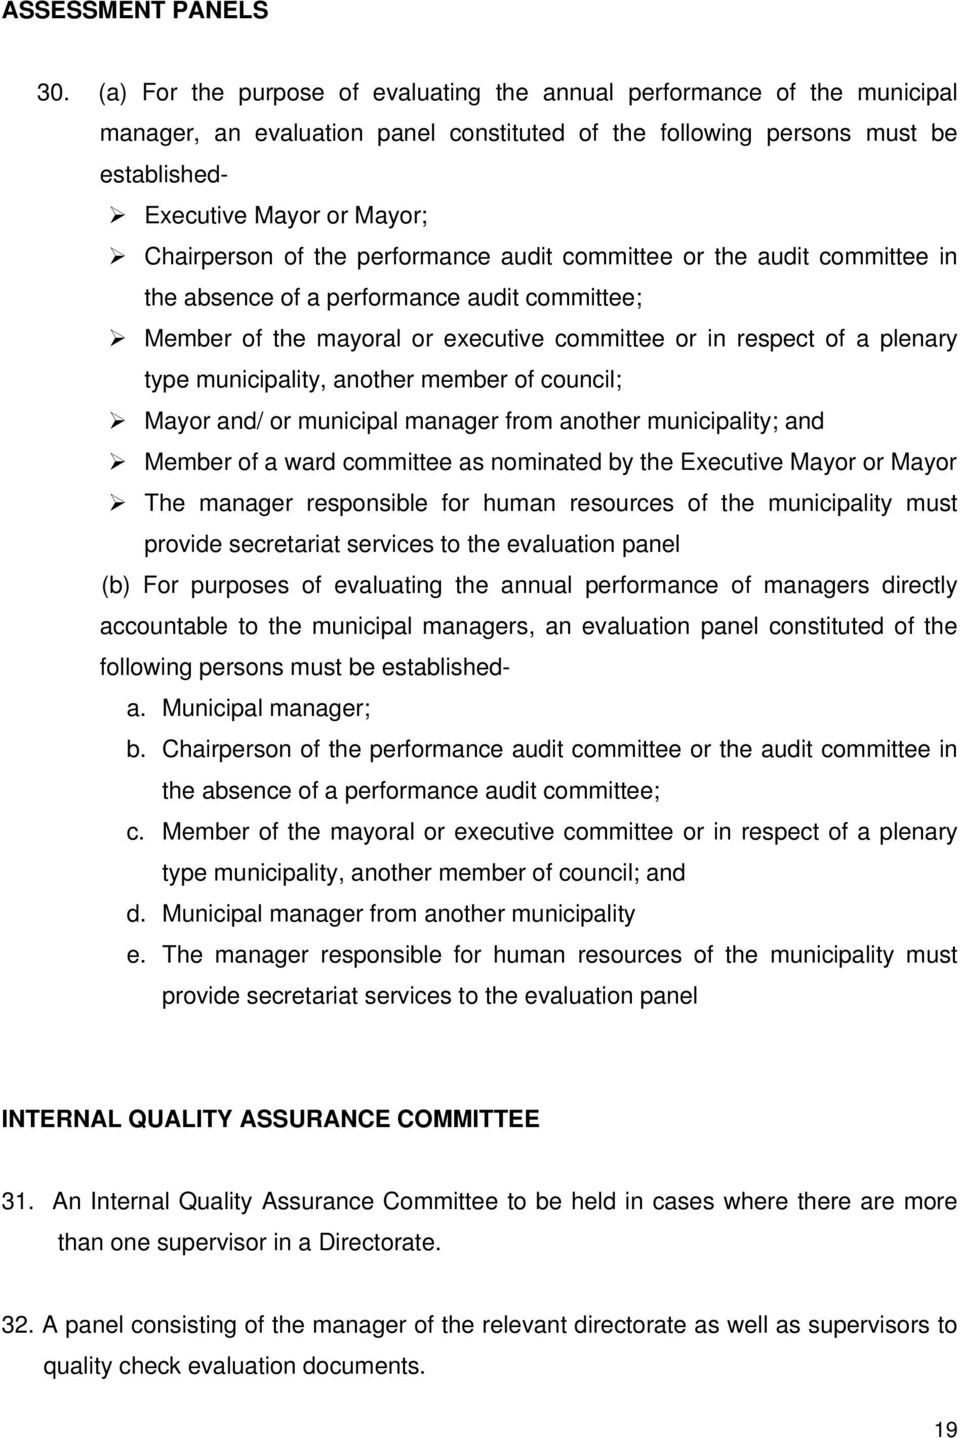 of the performance audit committee or the audit committee in the absence of a performance audit committee; Member of the mayoral or executive committee or in respect of a plenary type municipality,